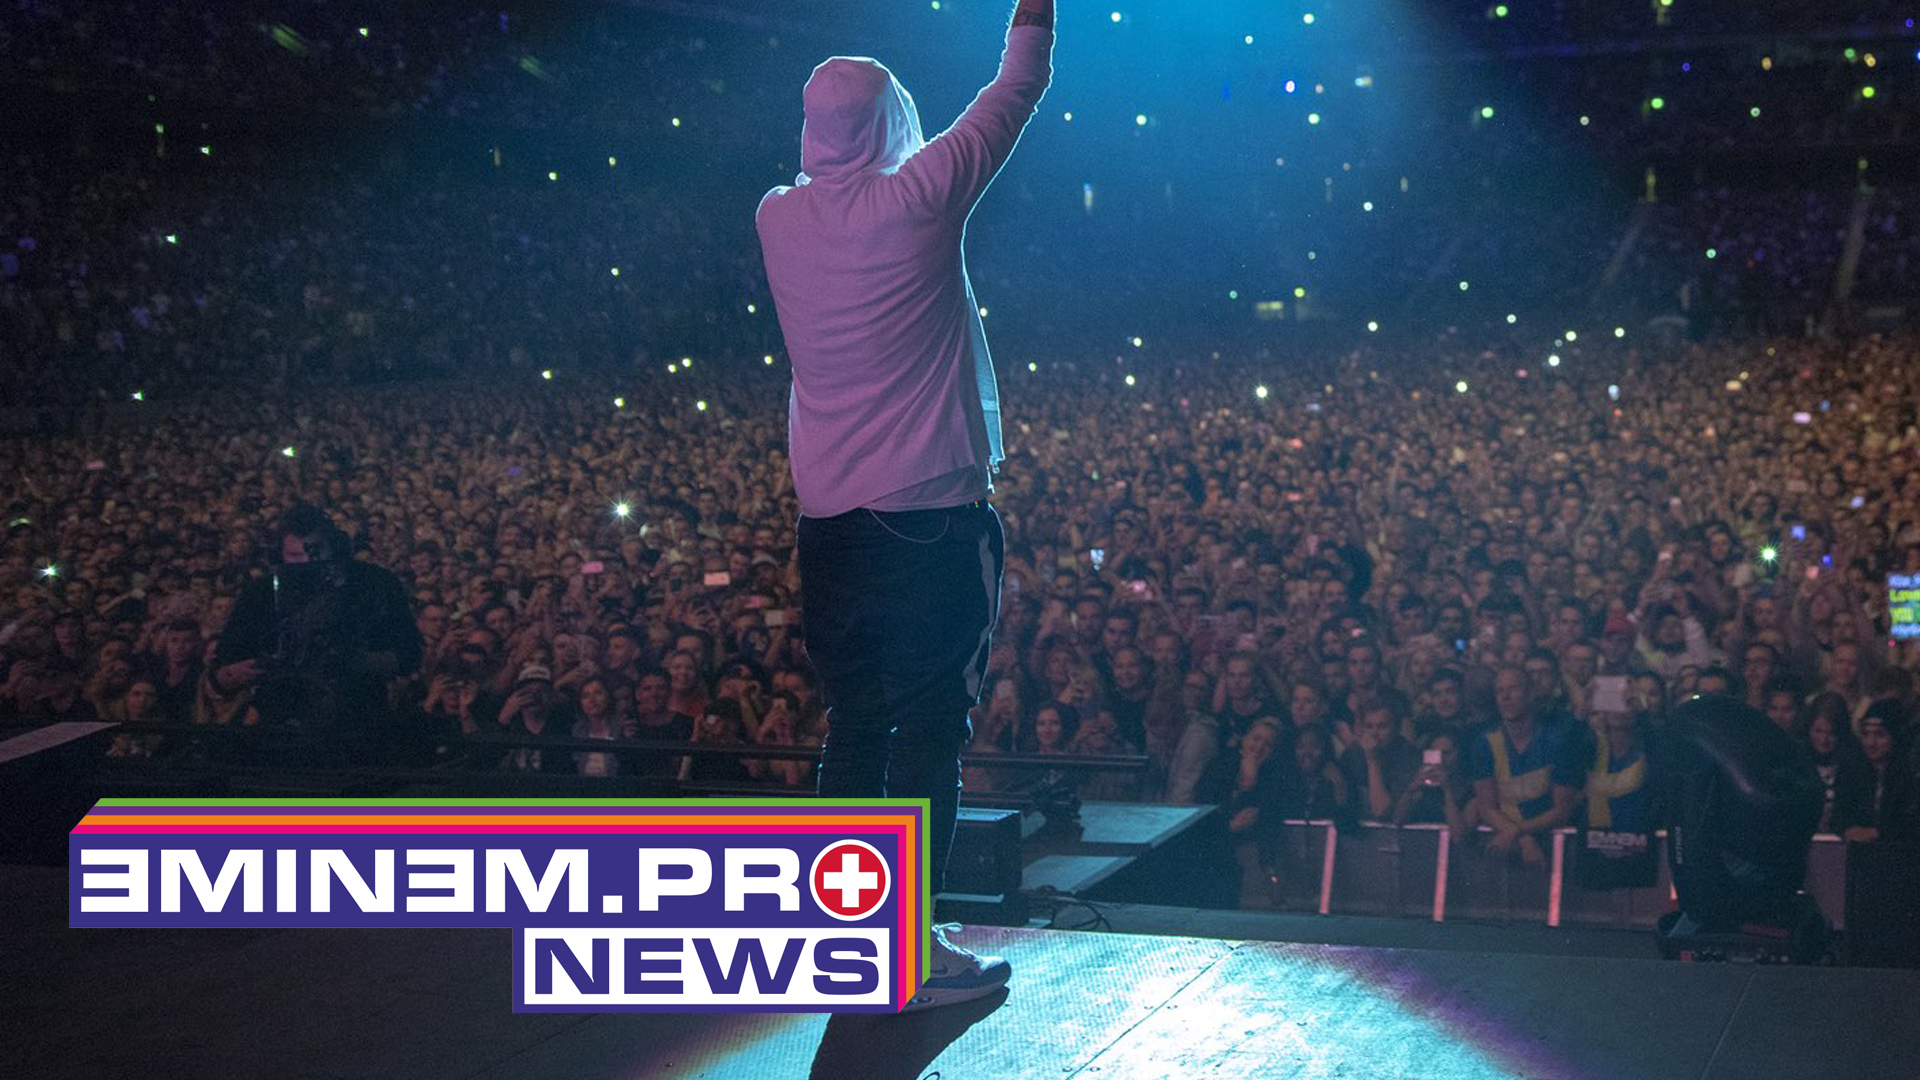 Eminem had broken the attendance record in Sweden and Norway